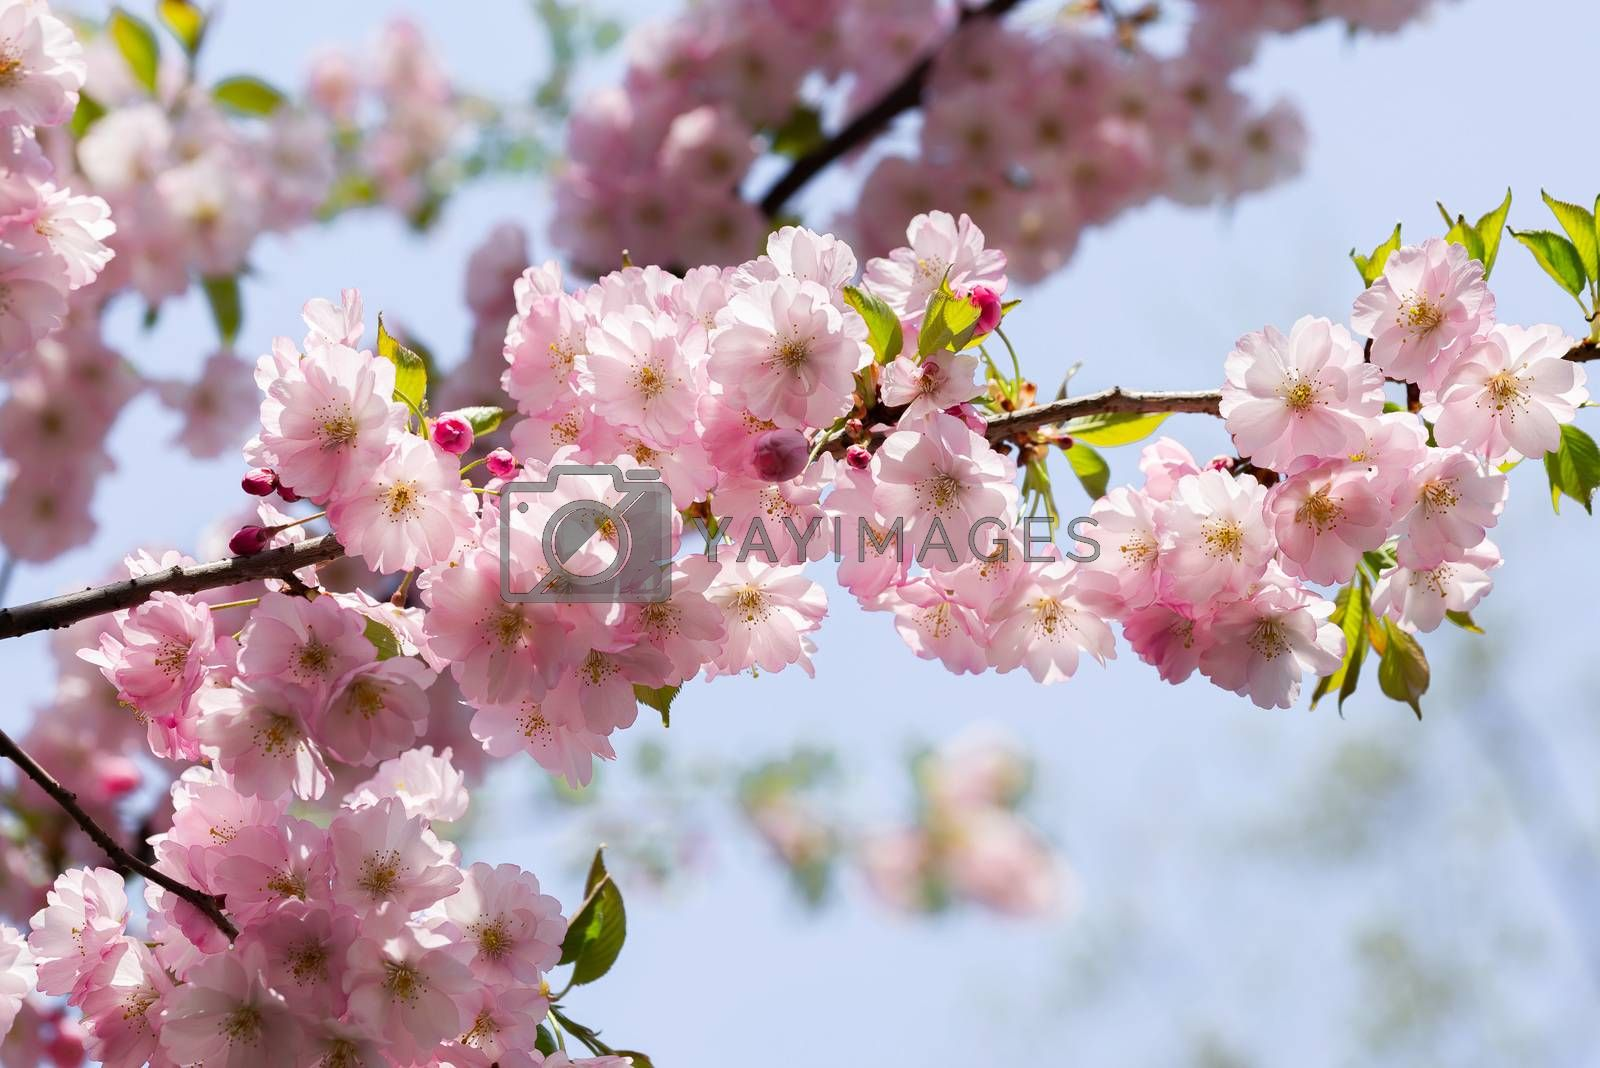 Nice pink Cherry Blossom flowers under the warm spring sun